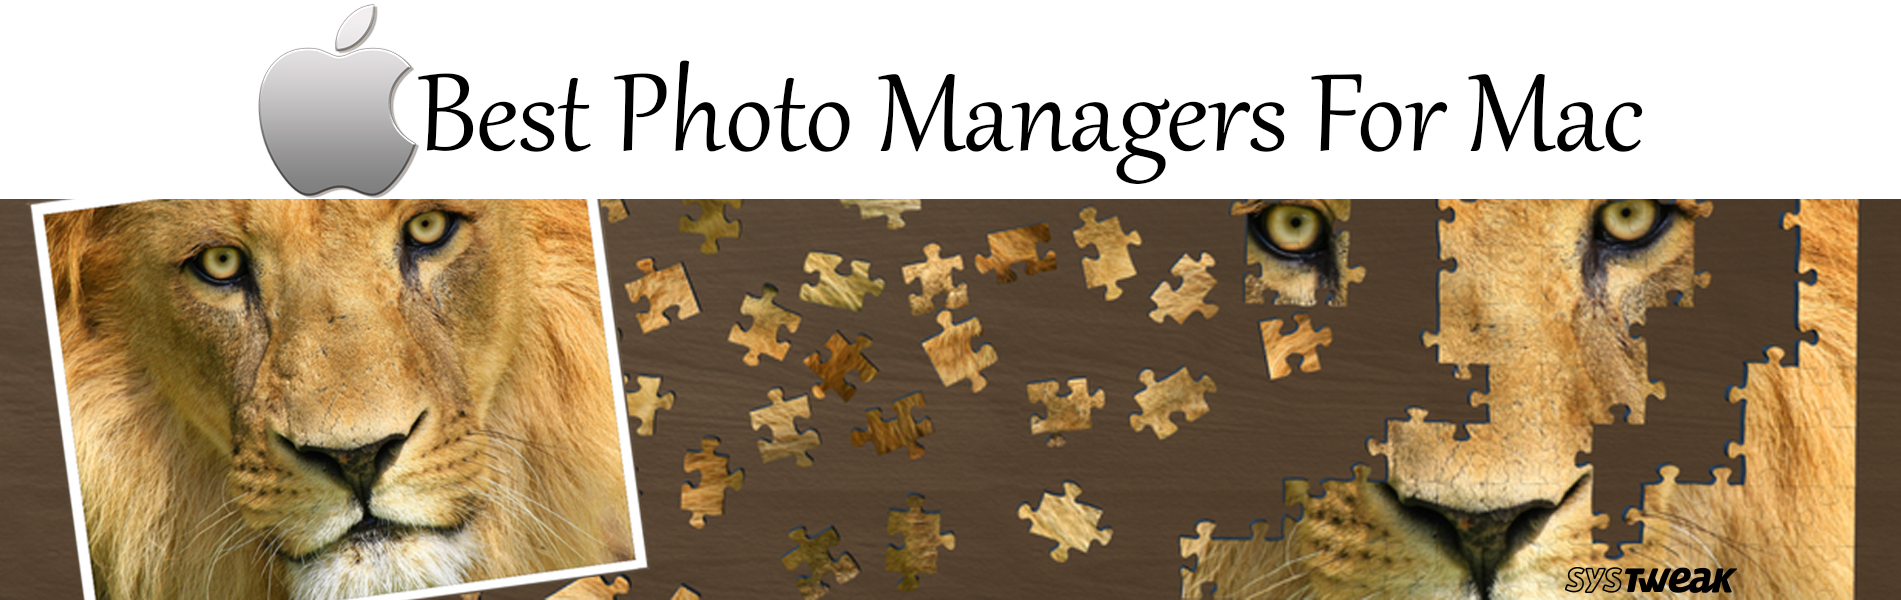 5 Best Photo Management Apps For Mac In 2018